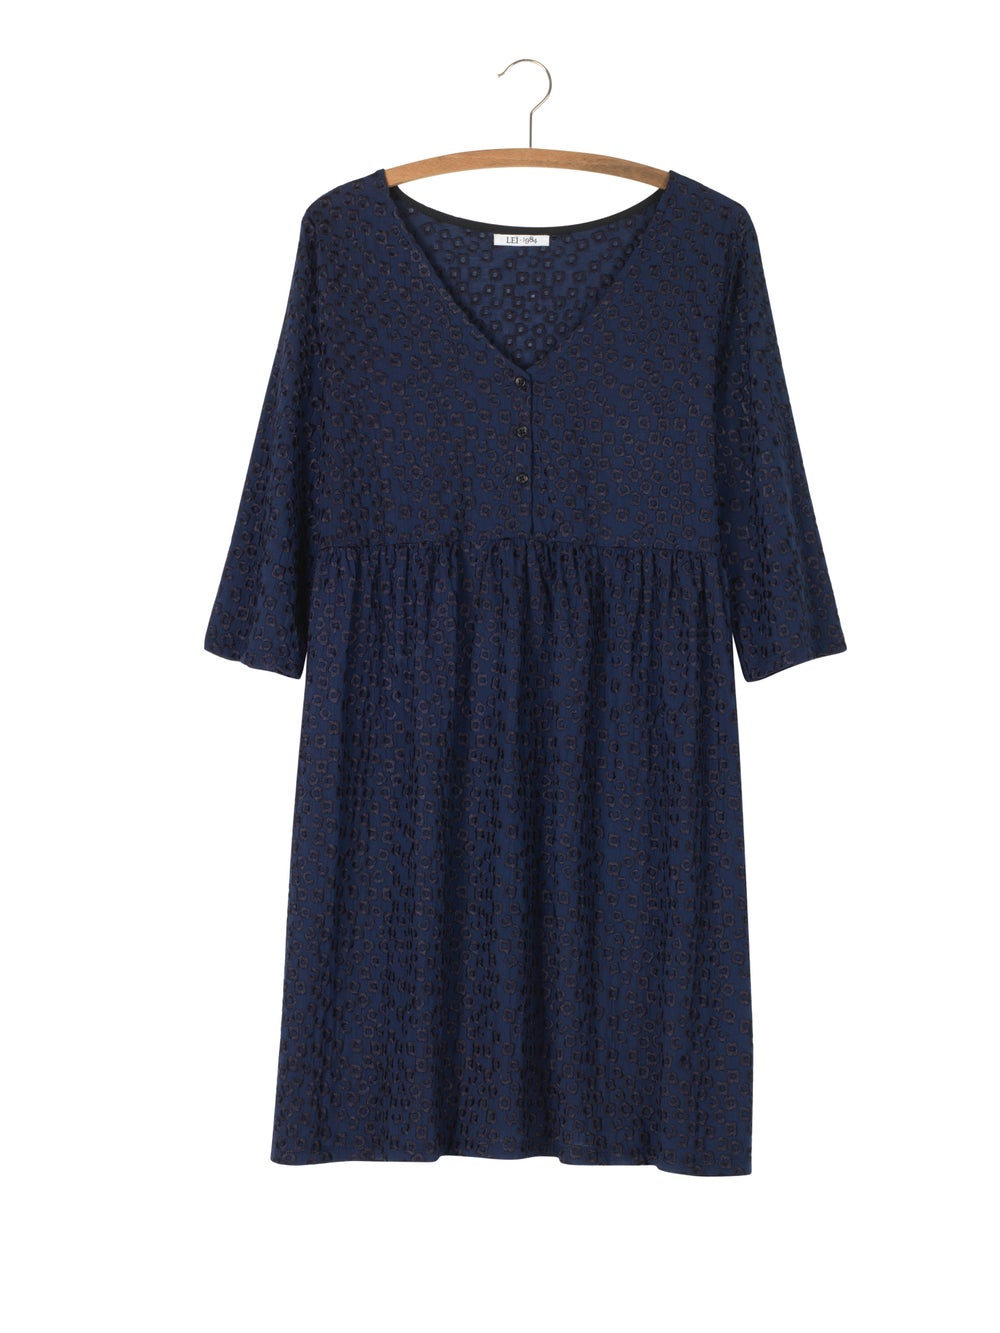 Image of Robe AMANDA 190€ -50%